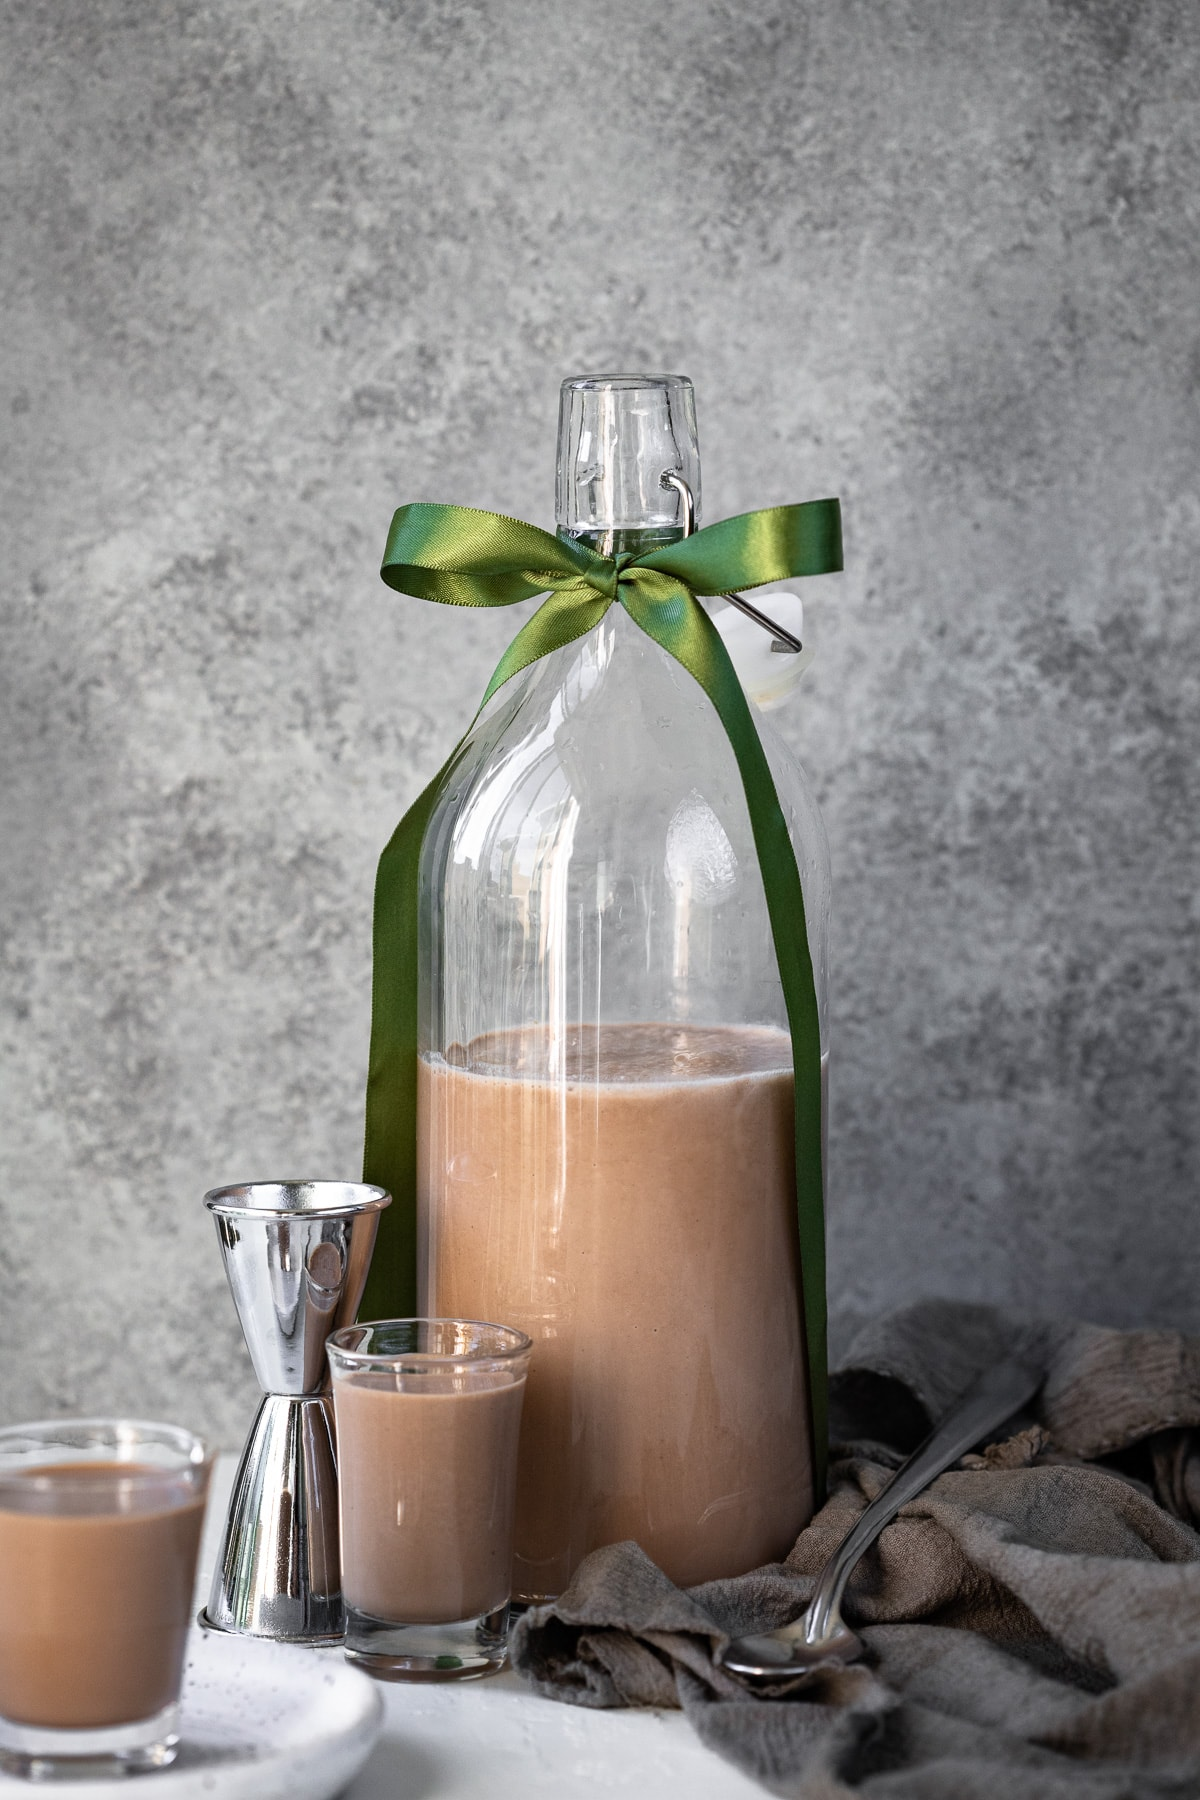 DIY Irish Cream {Homemade Bailey's} - a sweet, creamy, and chocolate-y, homemade Irish Cream Liqueur made in a blender in SECONDS. | www.brighteyedbaker.com